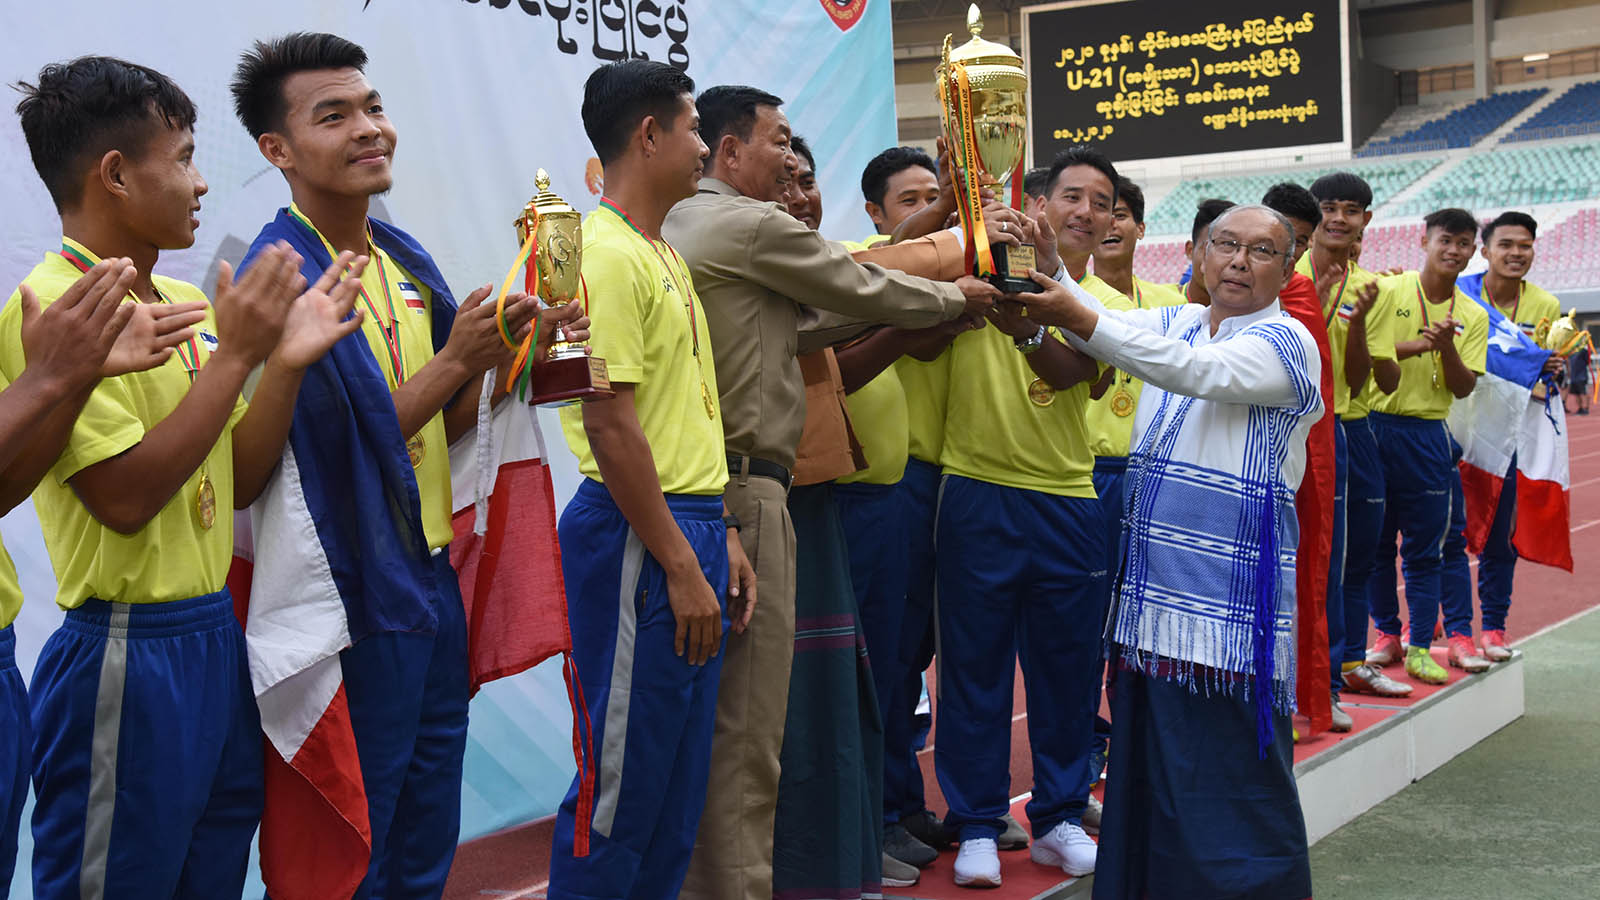 Amyotha Hluttaw Speaker Mahn Win Khaing Than presents trophy to the winner team at the award-giving ceremony of 2020 States/Regions U-21 men's football match in Nay Pyi Taw yesterday.Photo: MNA